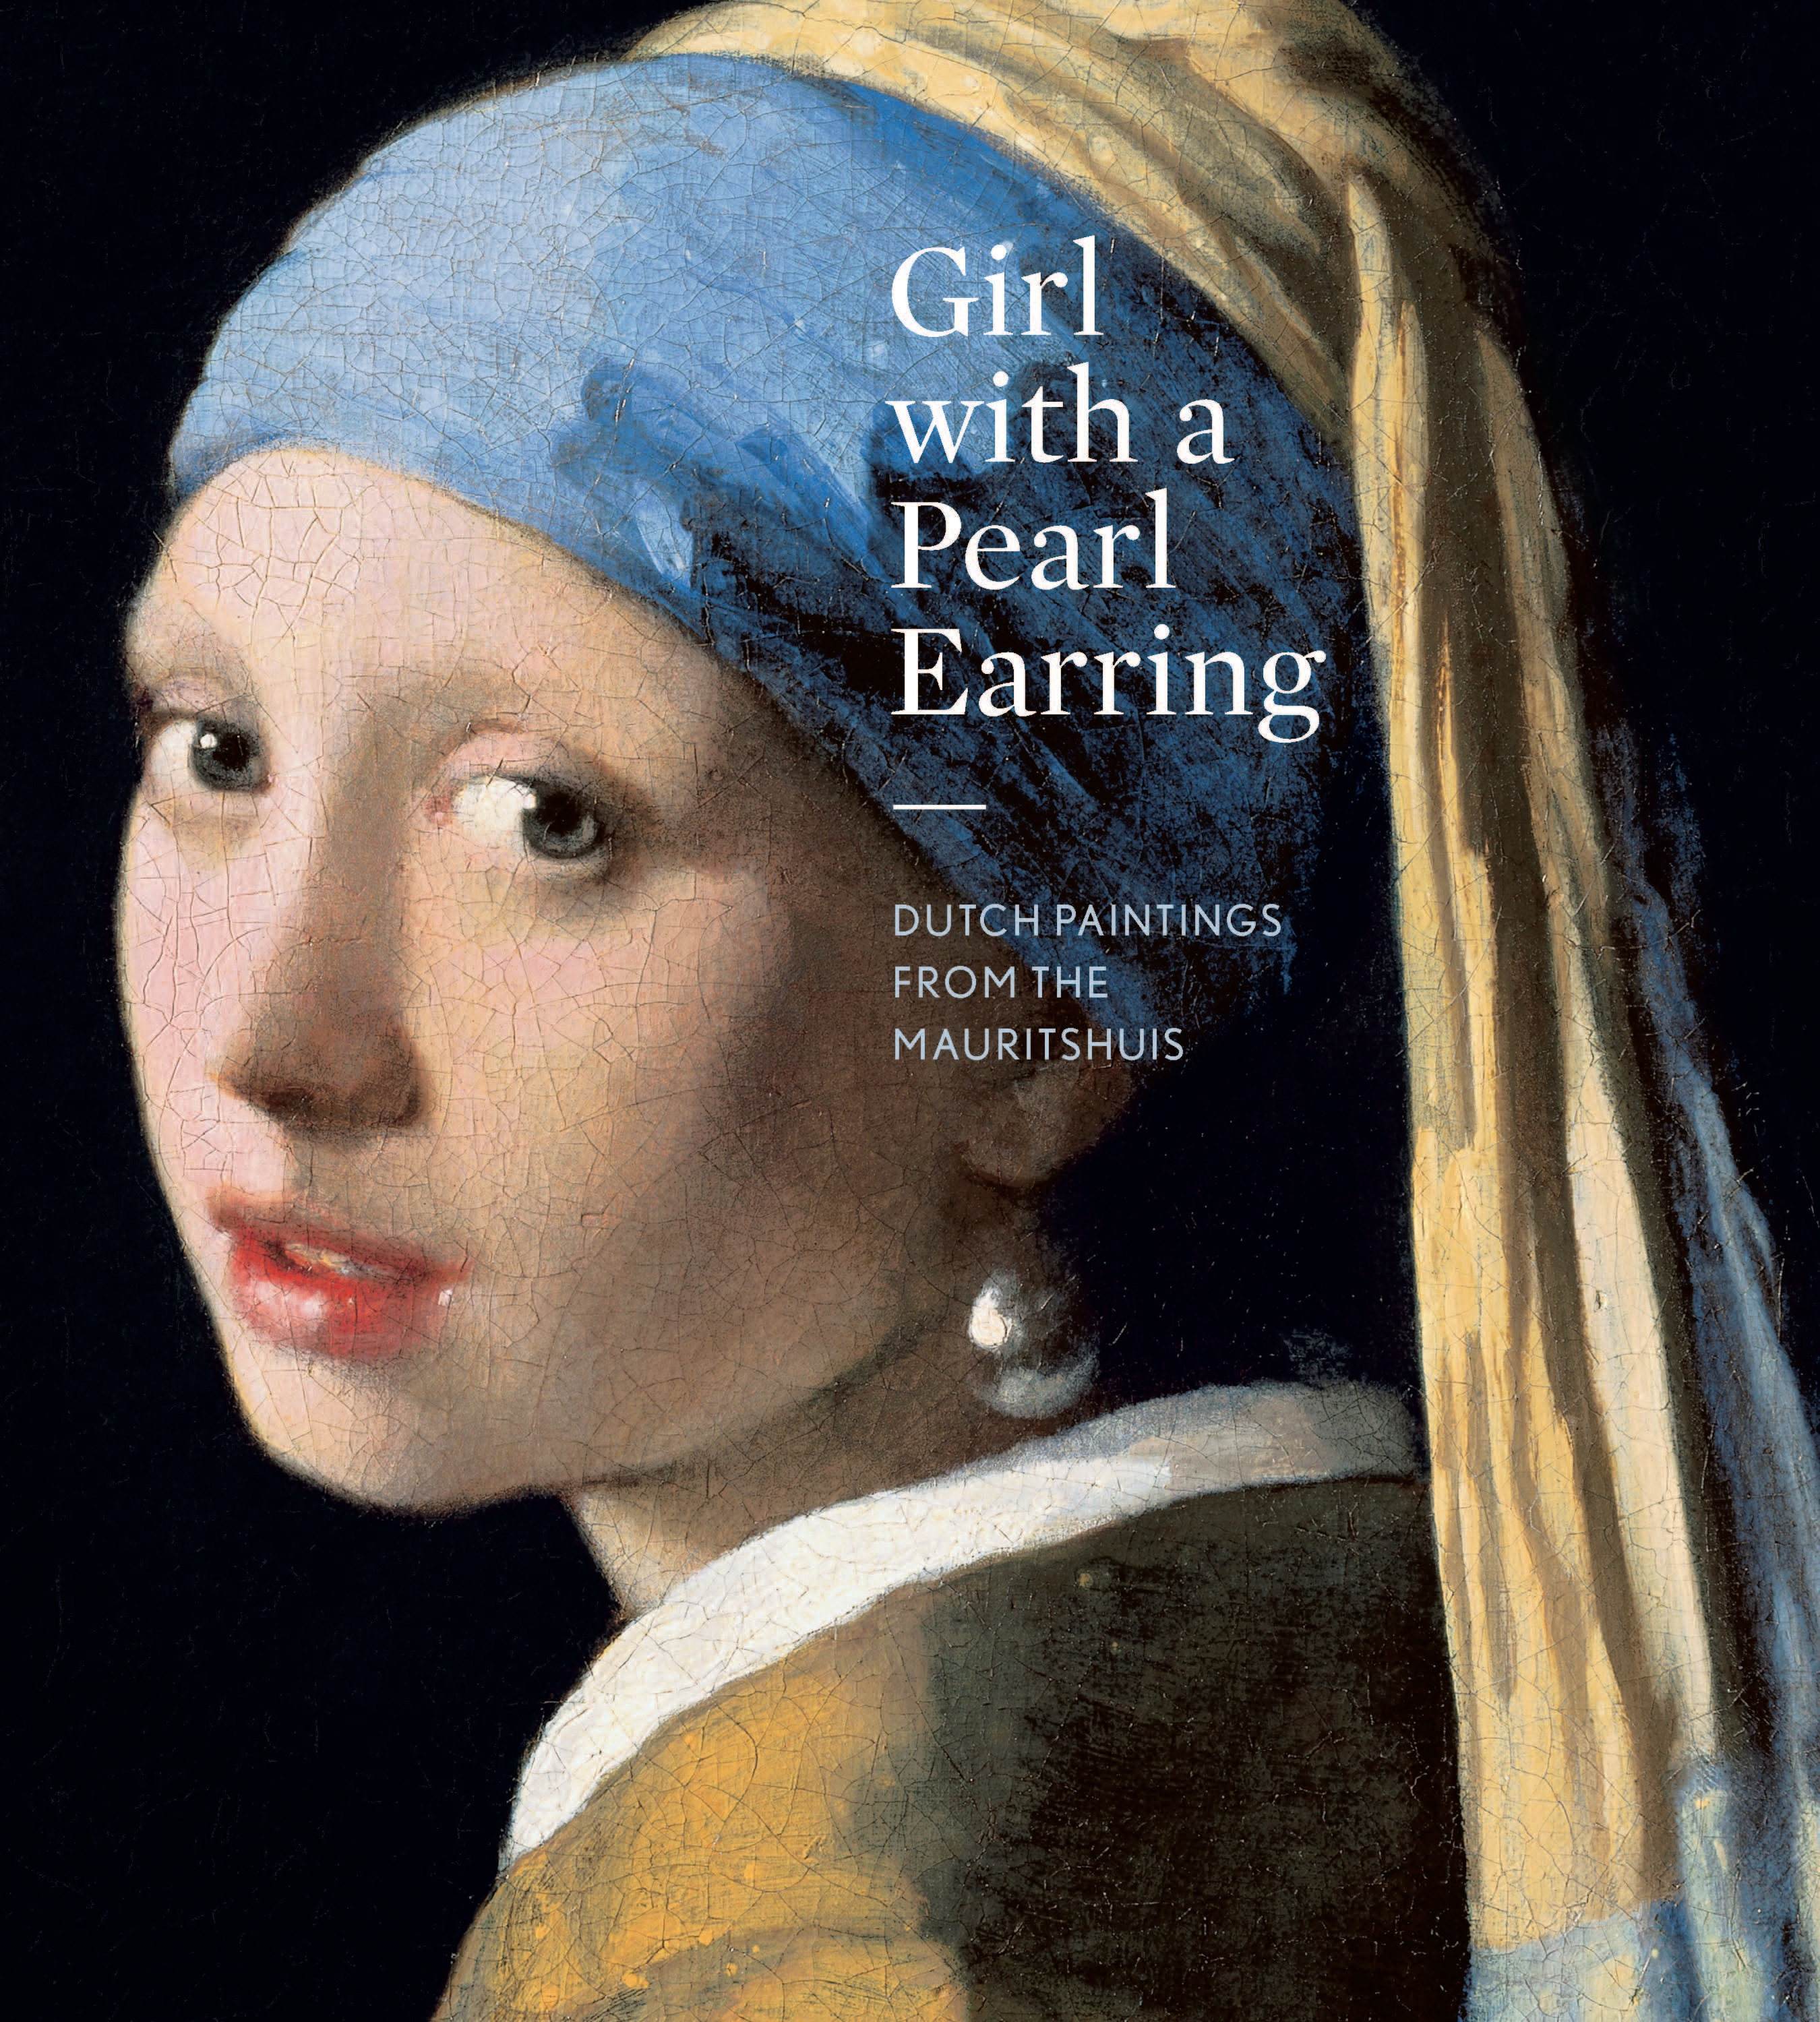 005 Girl With Pearl Earring Essay A 129424 Outstanding The Movie Film Review Full